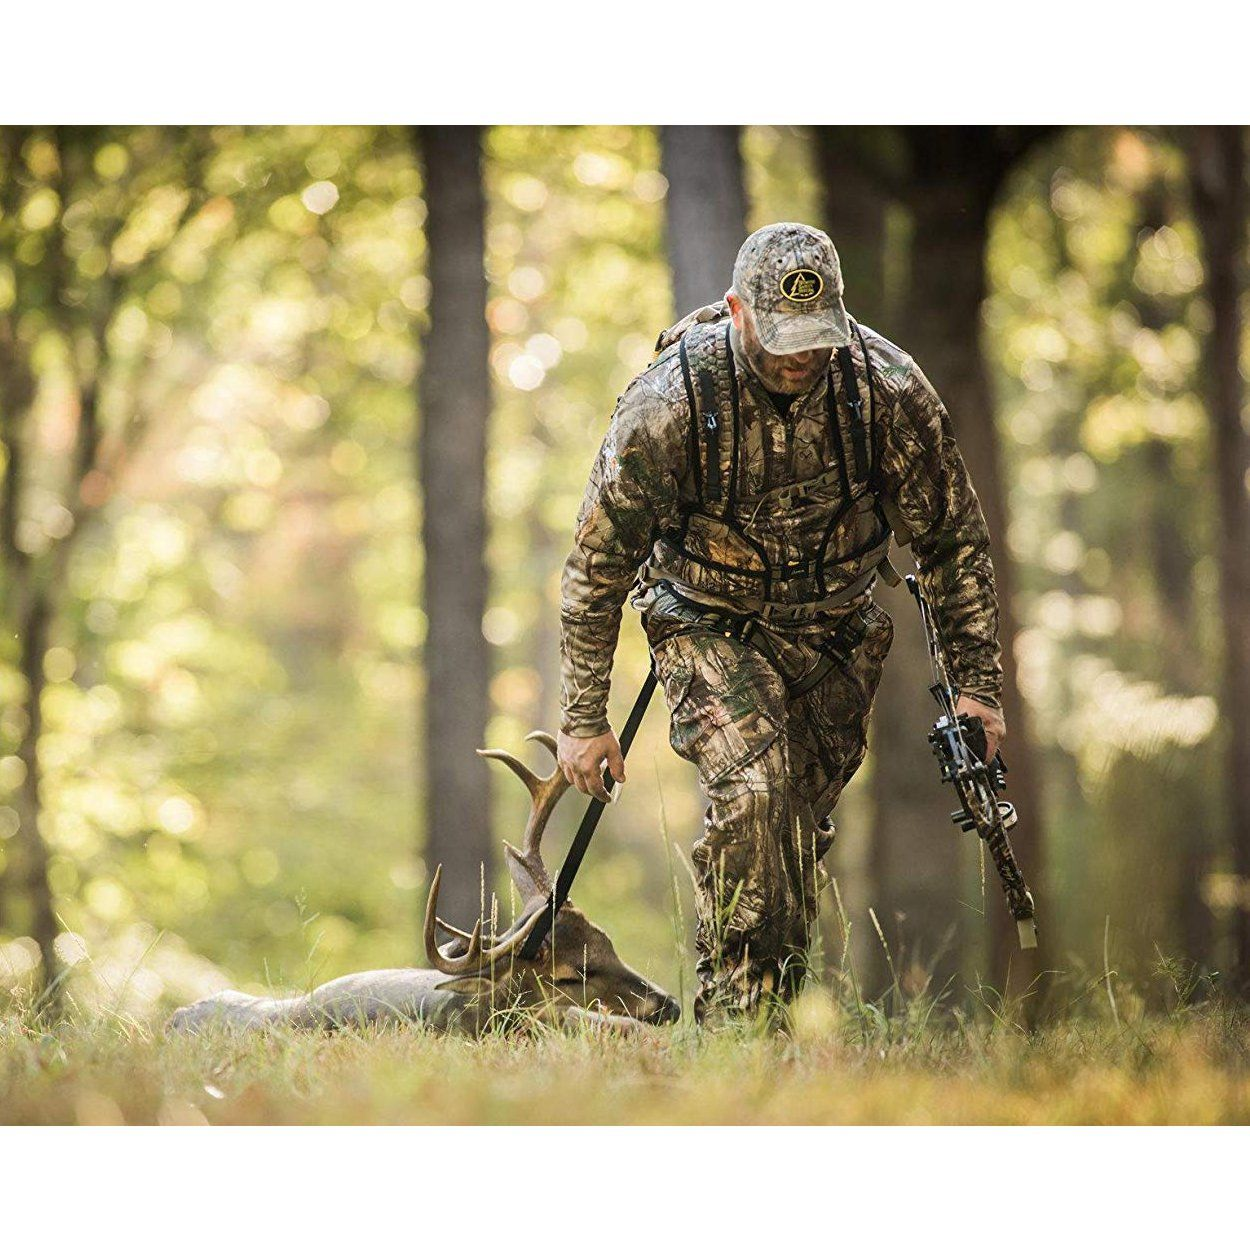 Hunter Safety Systems Camo Hunting X 1 Bowhunter Tree